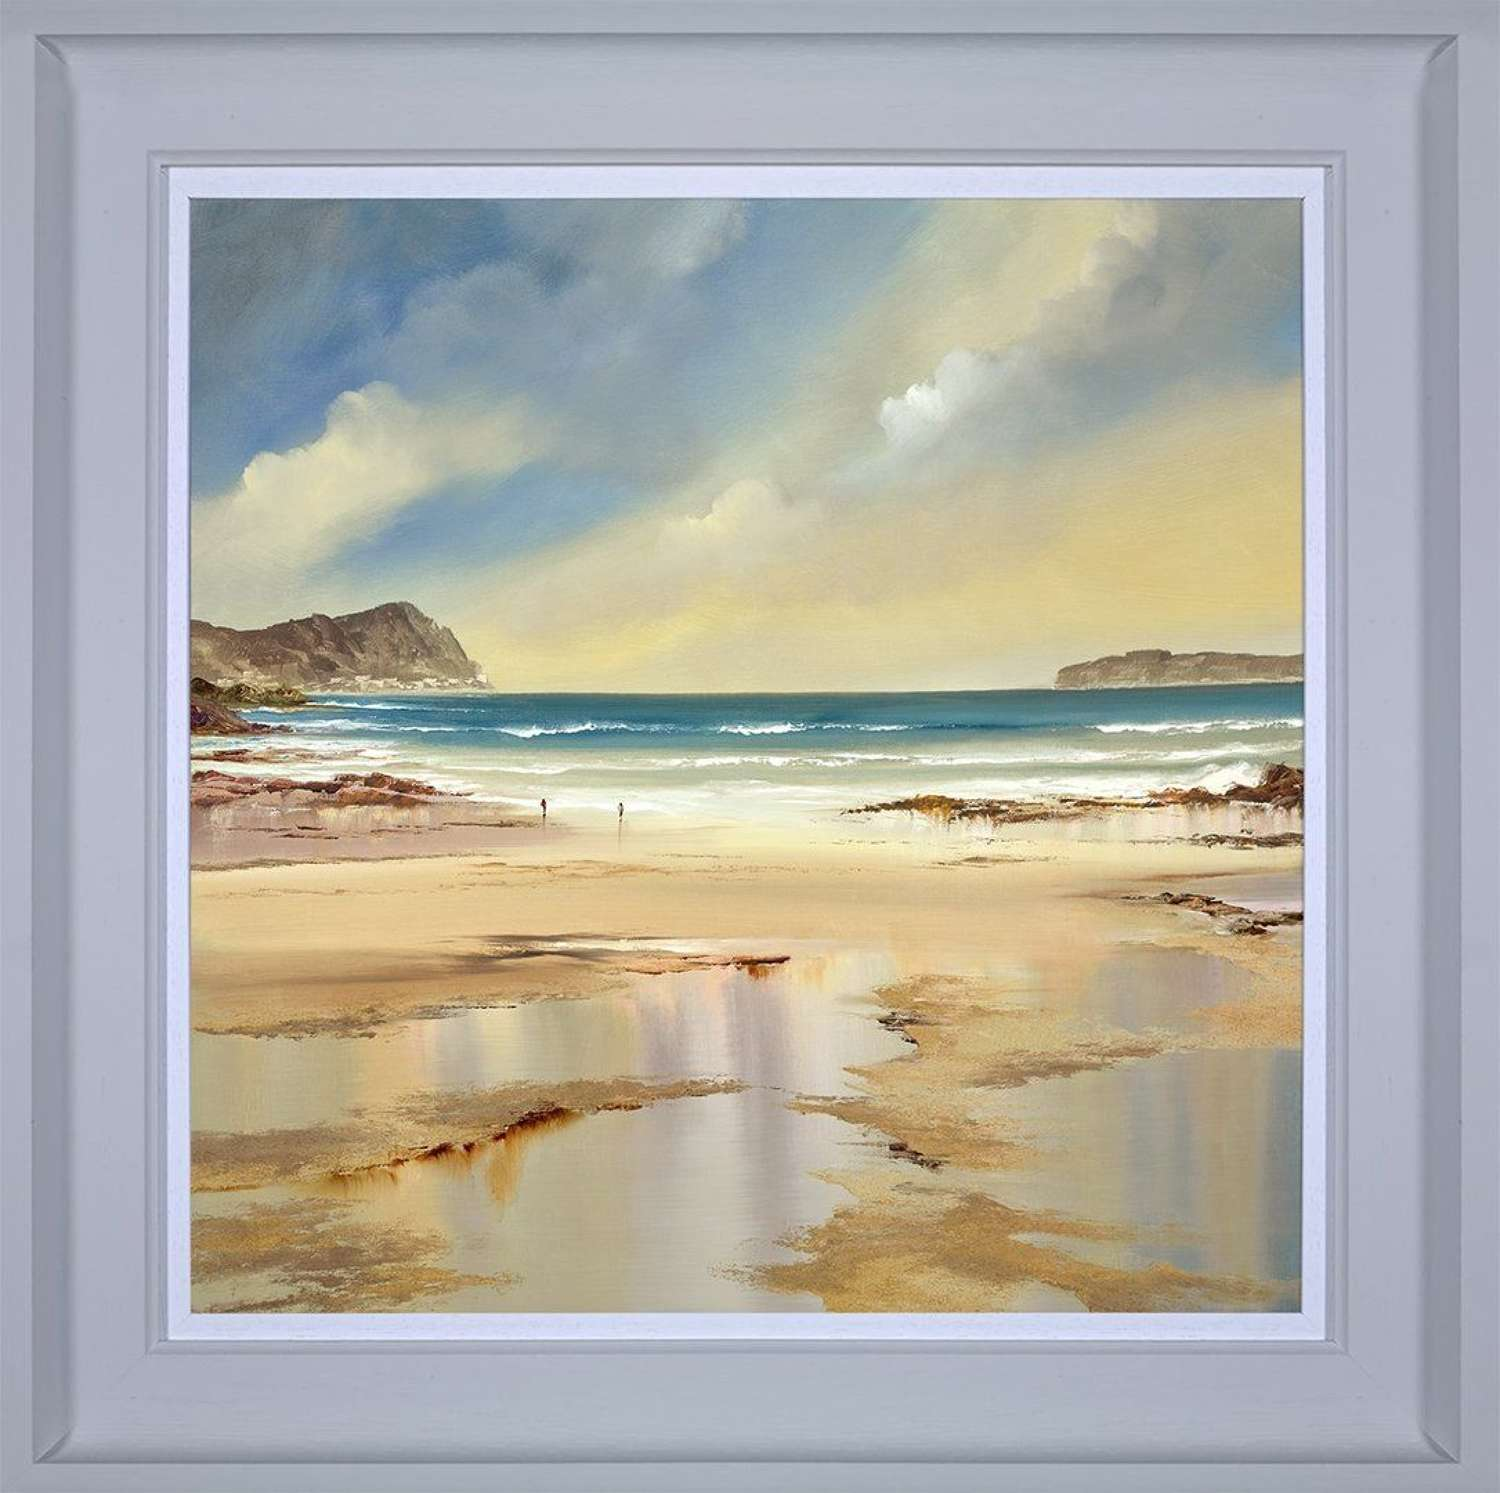 Moments to Remember - Framed Art Print by Philip Gray